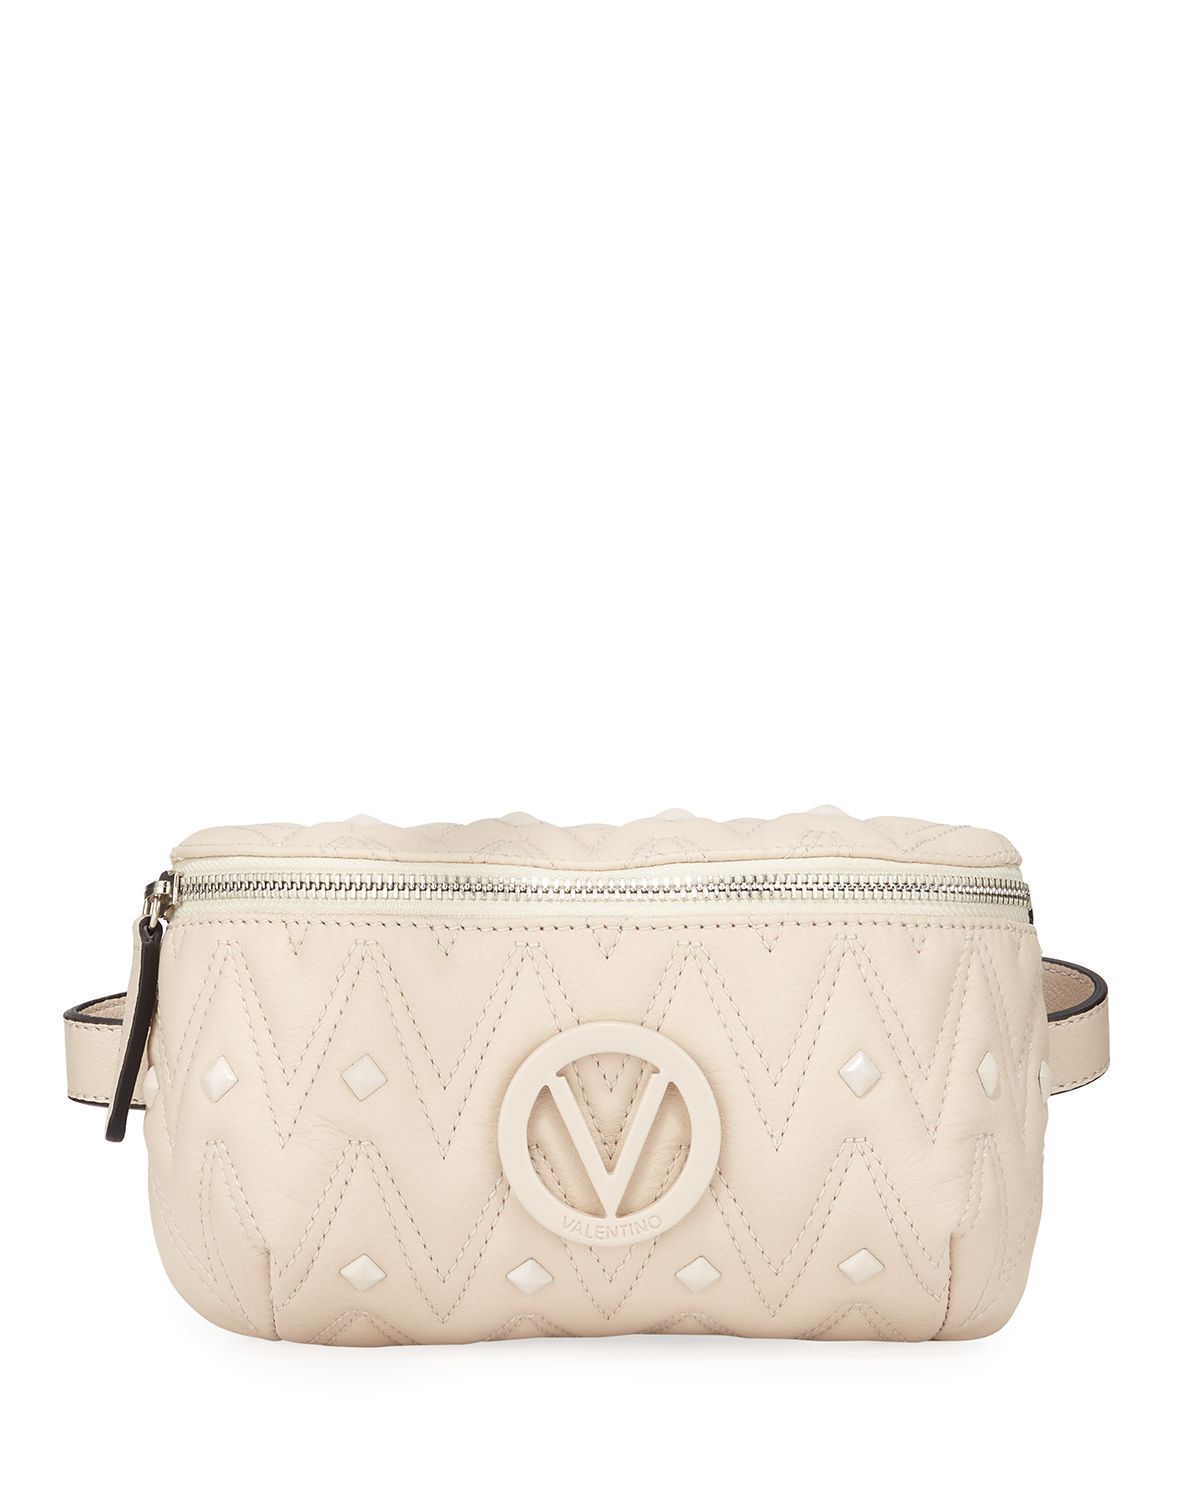 Valentino By Mario Valentino Belts Fanny Quilted Leather Belt Bag, MILK